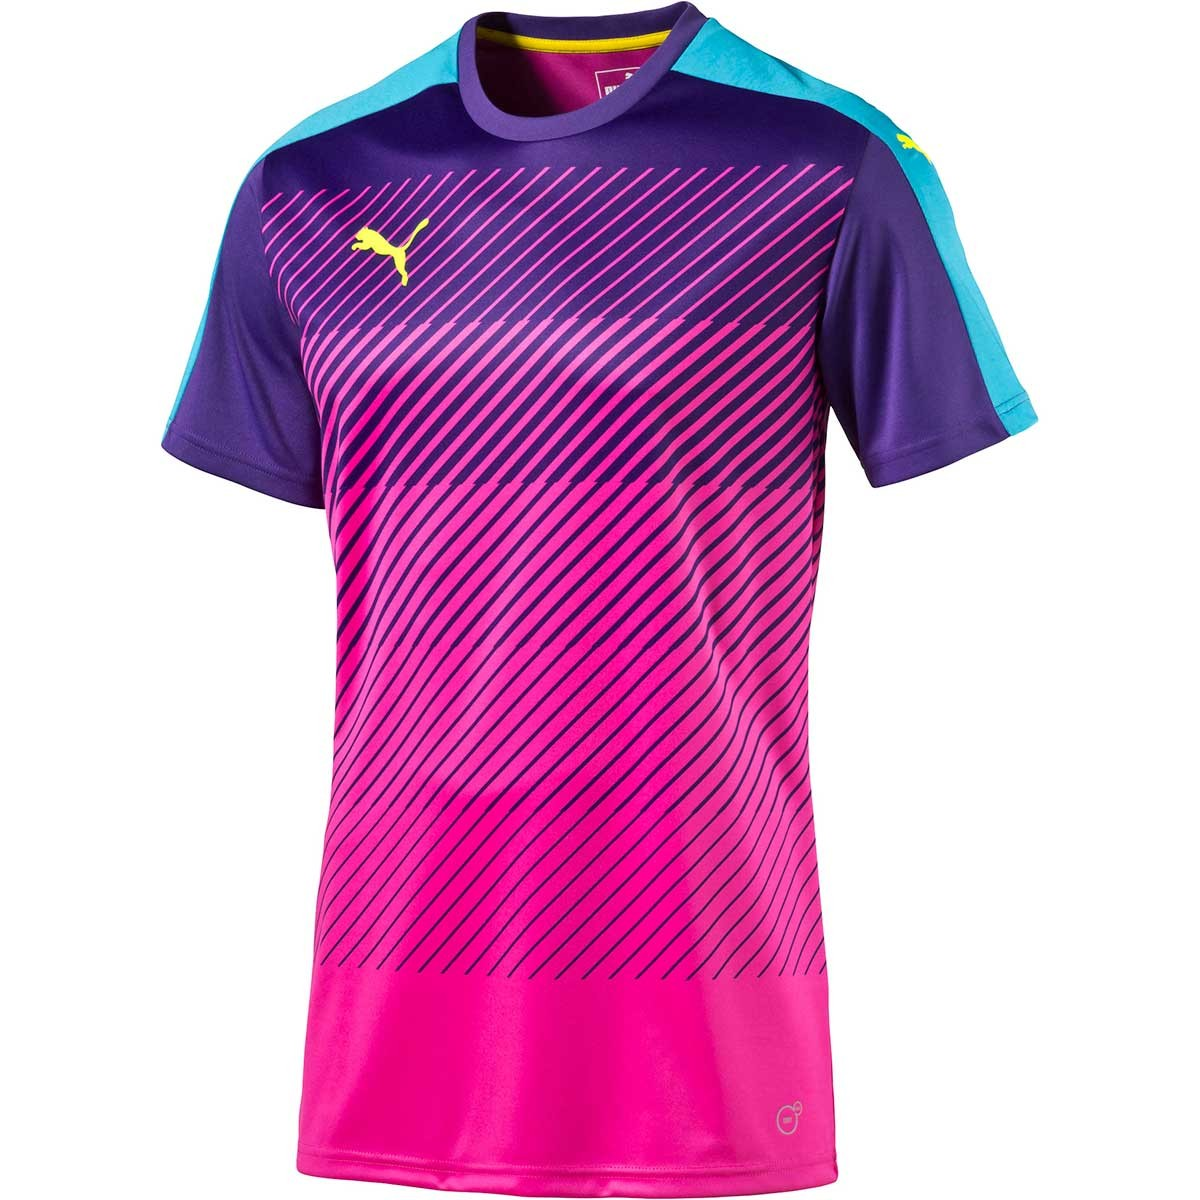 Psg black and pink jersey - 0 100